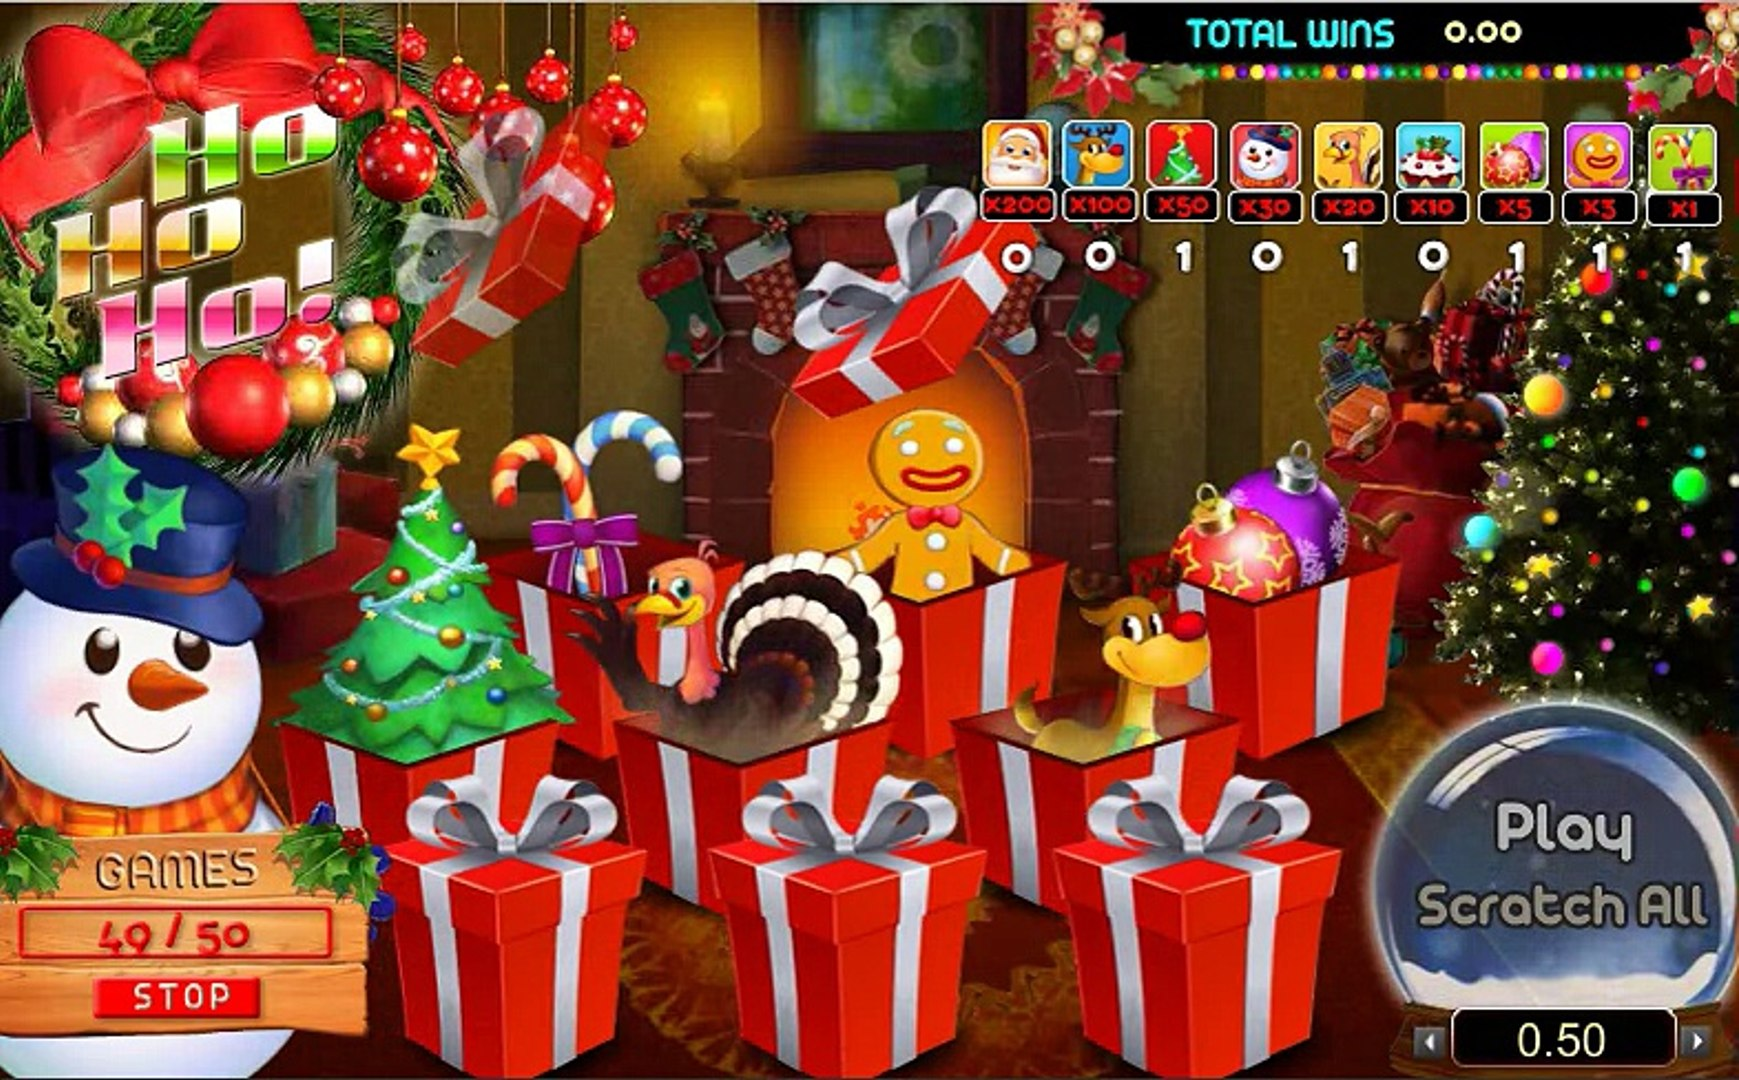 Get Money with Ho Ho Ho | MaxBet Malaysia Online Casino and Sports Betting